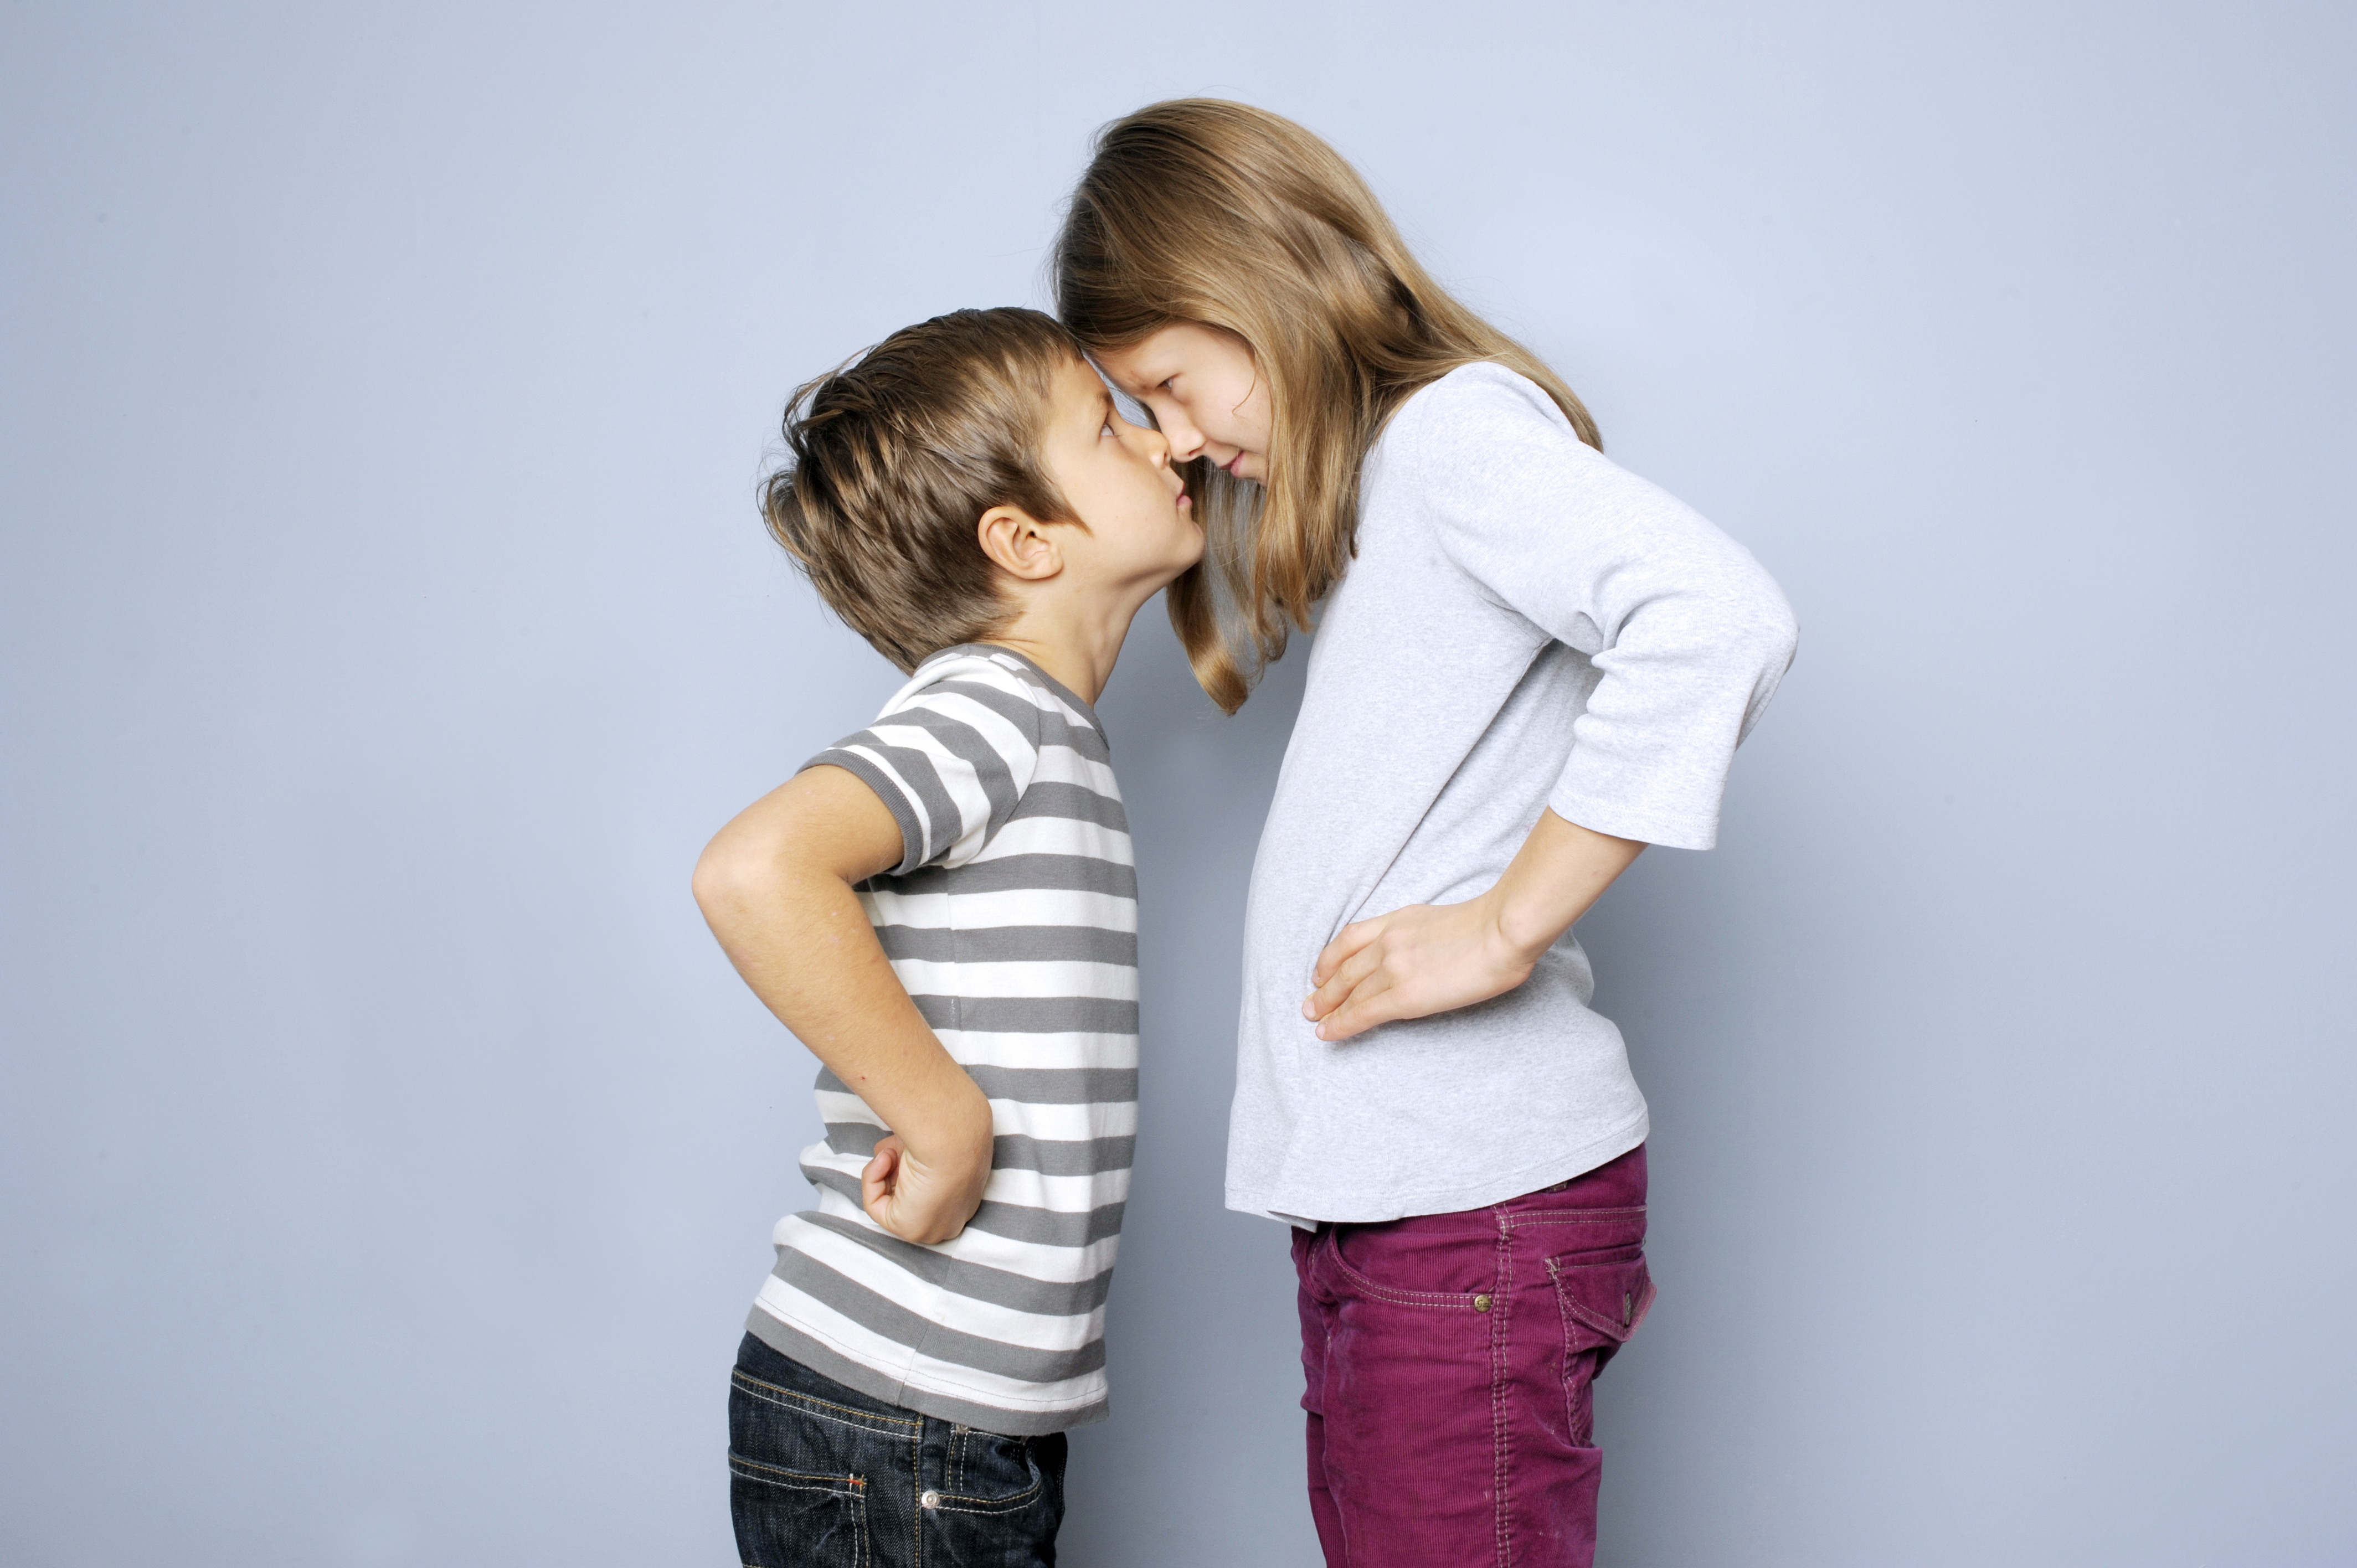 Sibling Bullying Associated with Poor Mental Health Outcomes Years Later